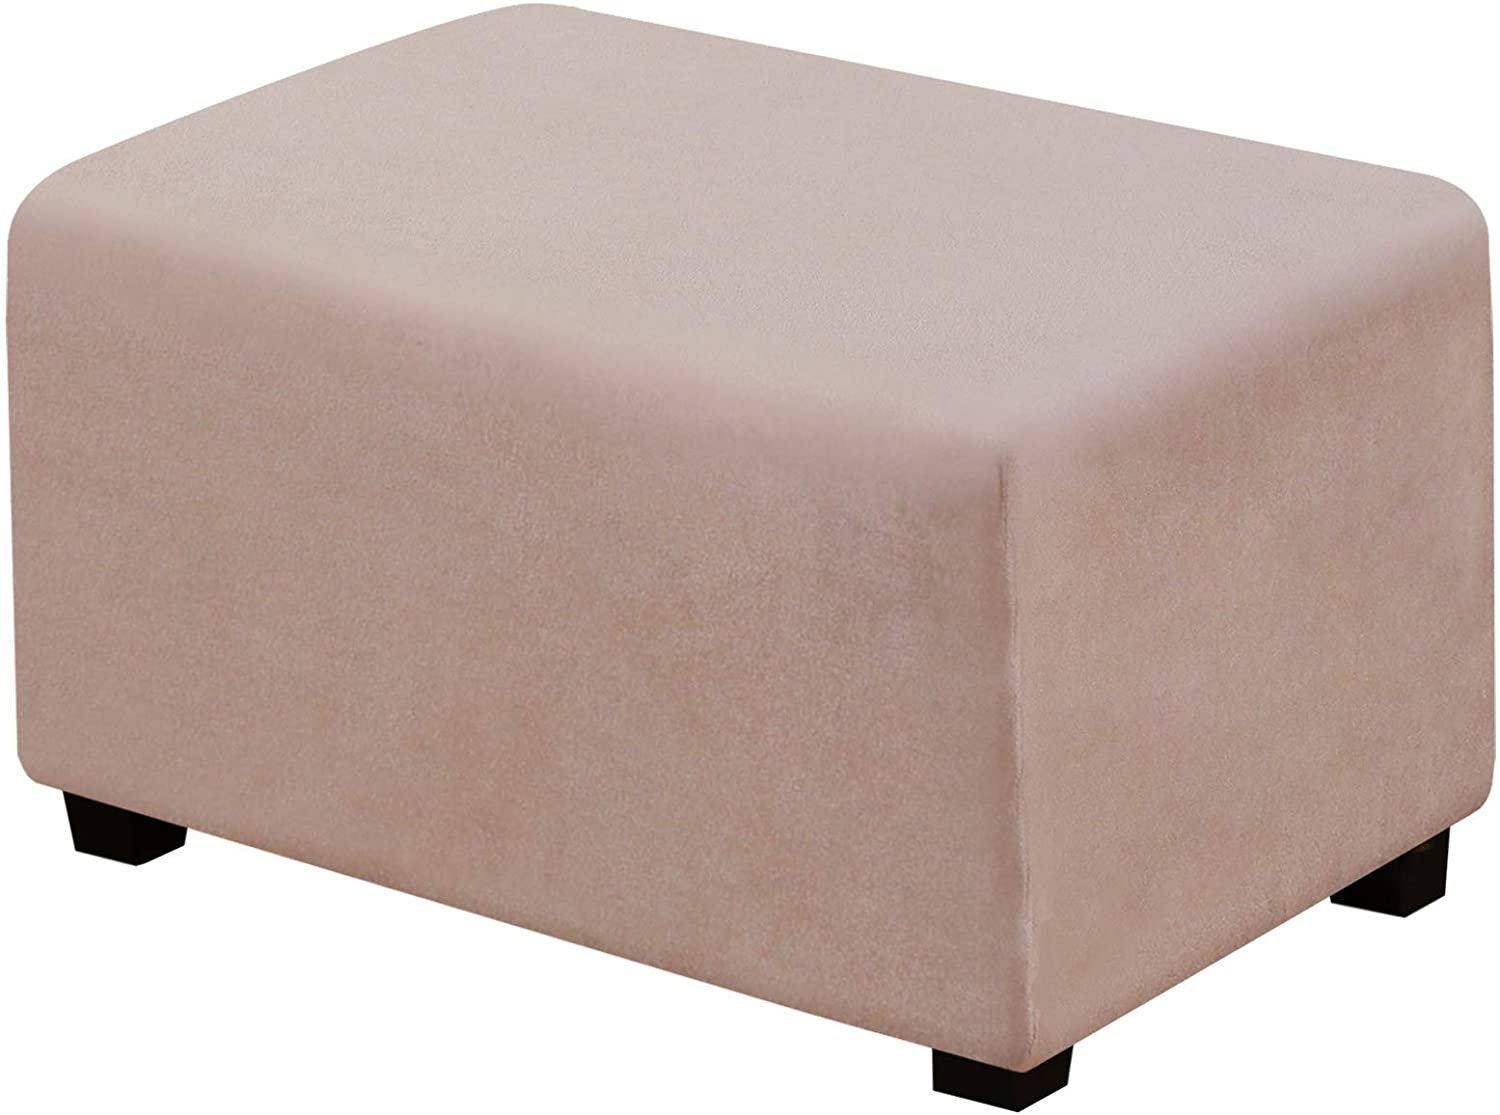 Suede Ottoman Cover Ottoman Slipcovers Removable Footstool Protector Velvet Plush 1 Piece Water Repellent Furniture Protector with Elastic Bottom, Machine Washable(Ottoman Large, Sand)